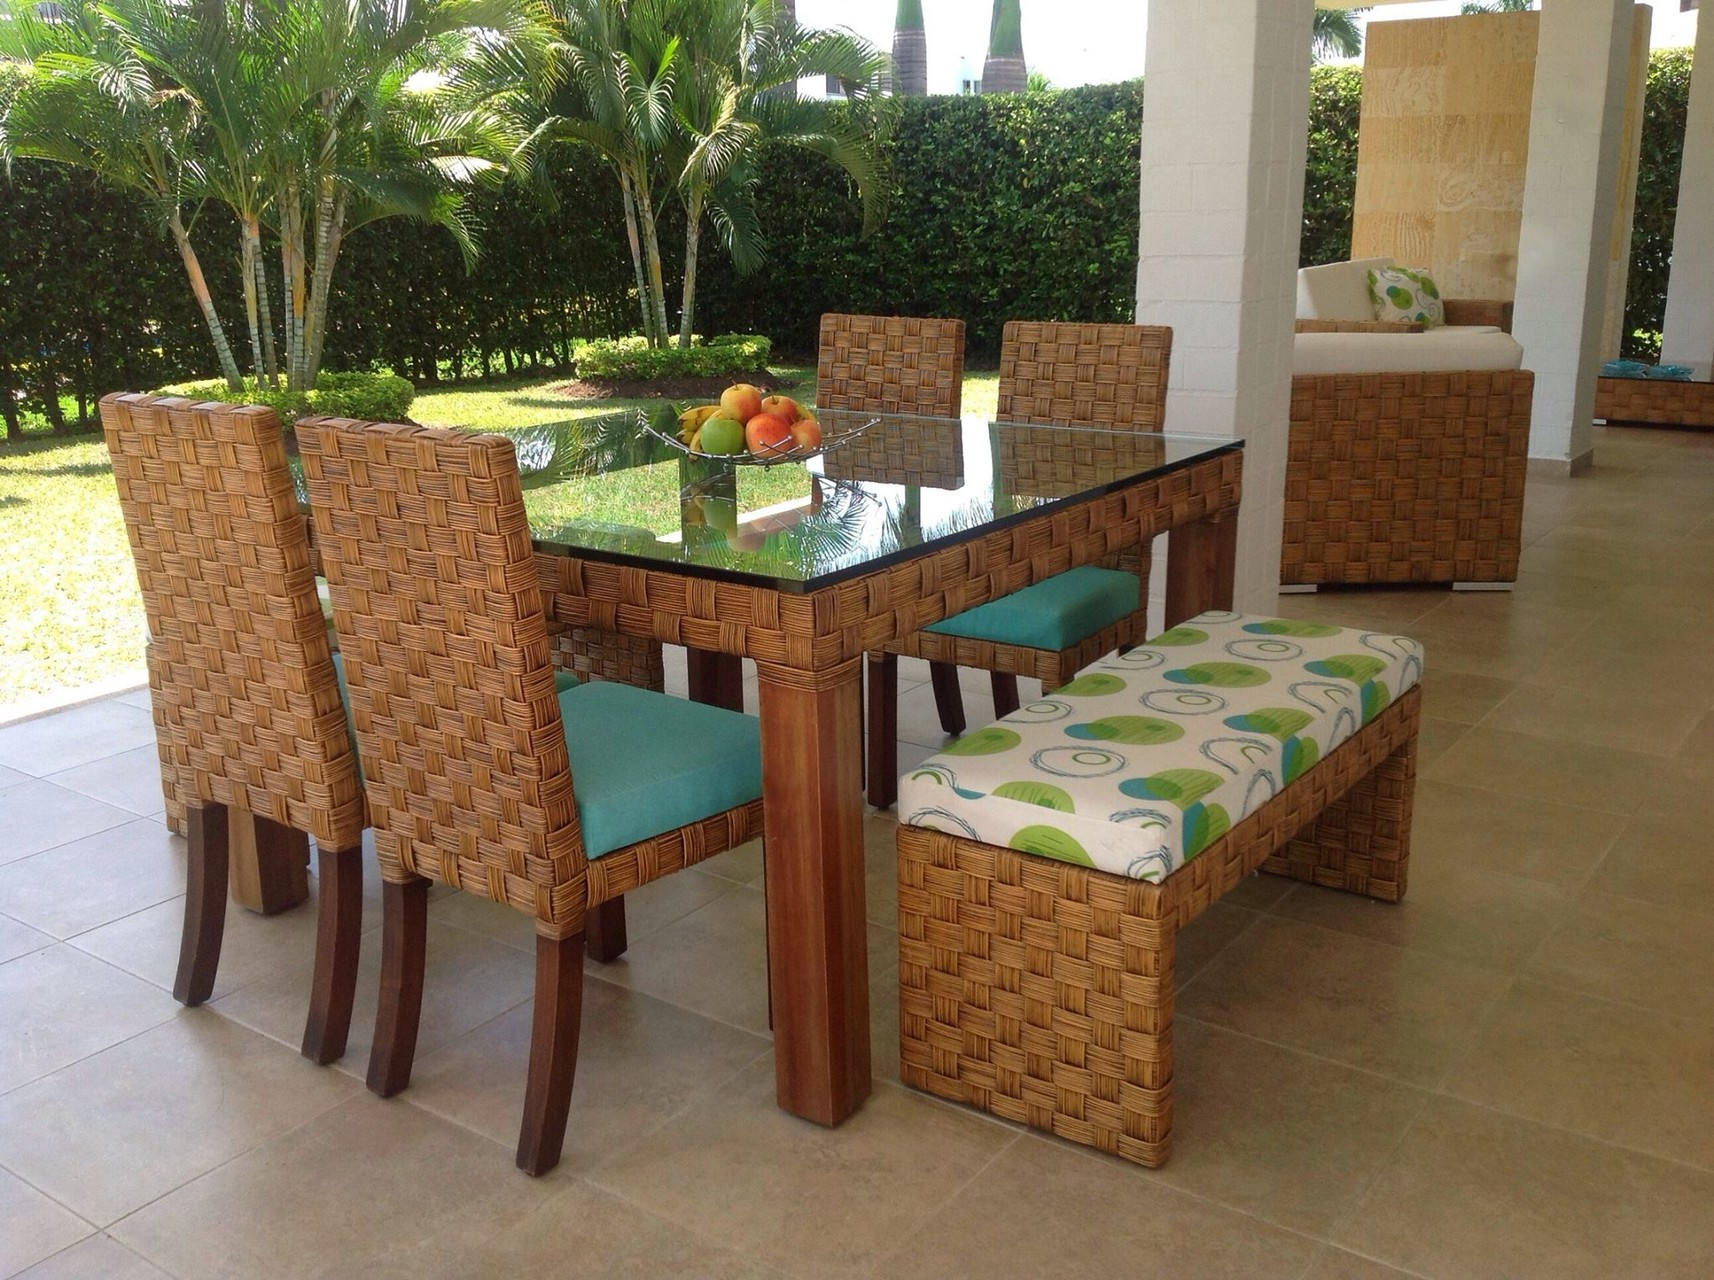 Muebles de rattan para exterior simple silln reclinable for Muebles de exterior de rattan